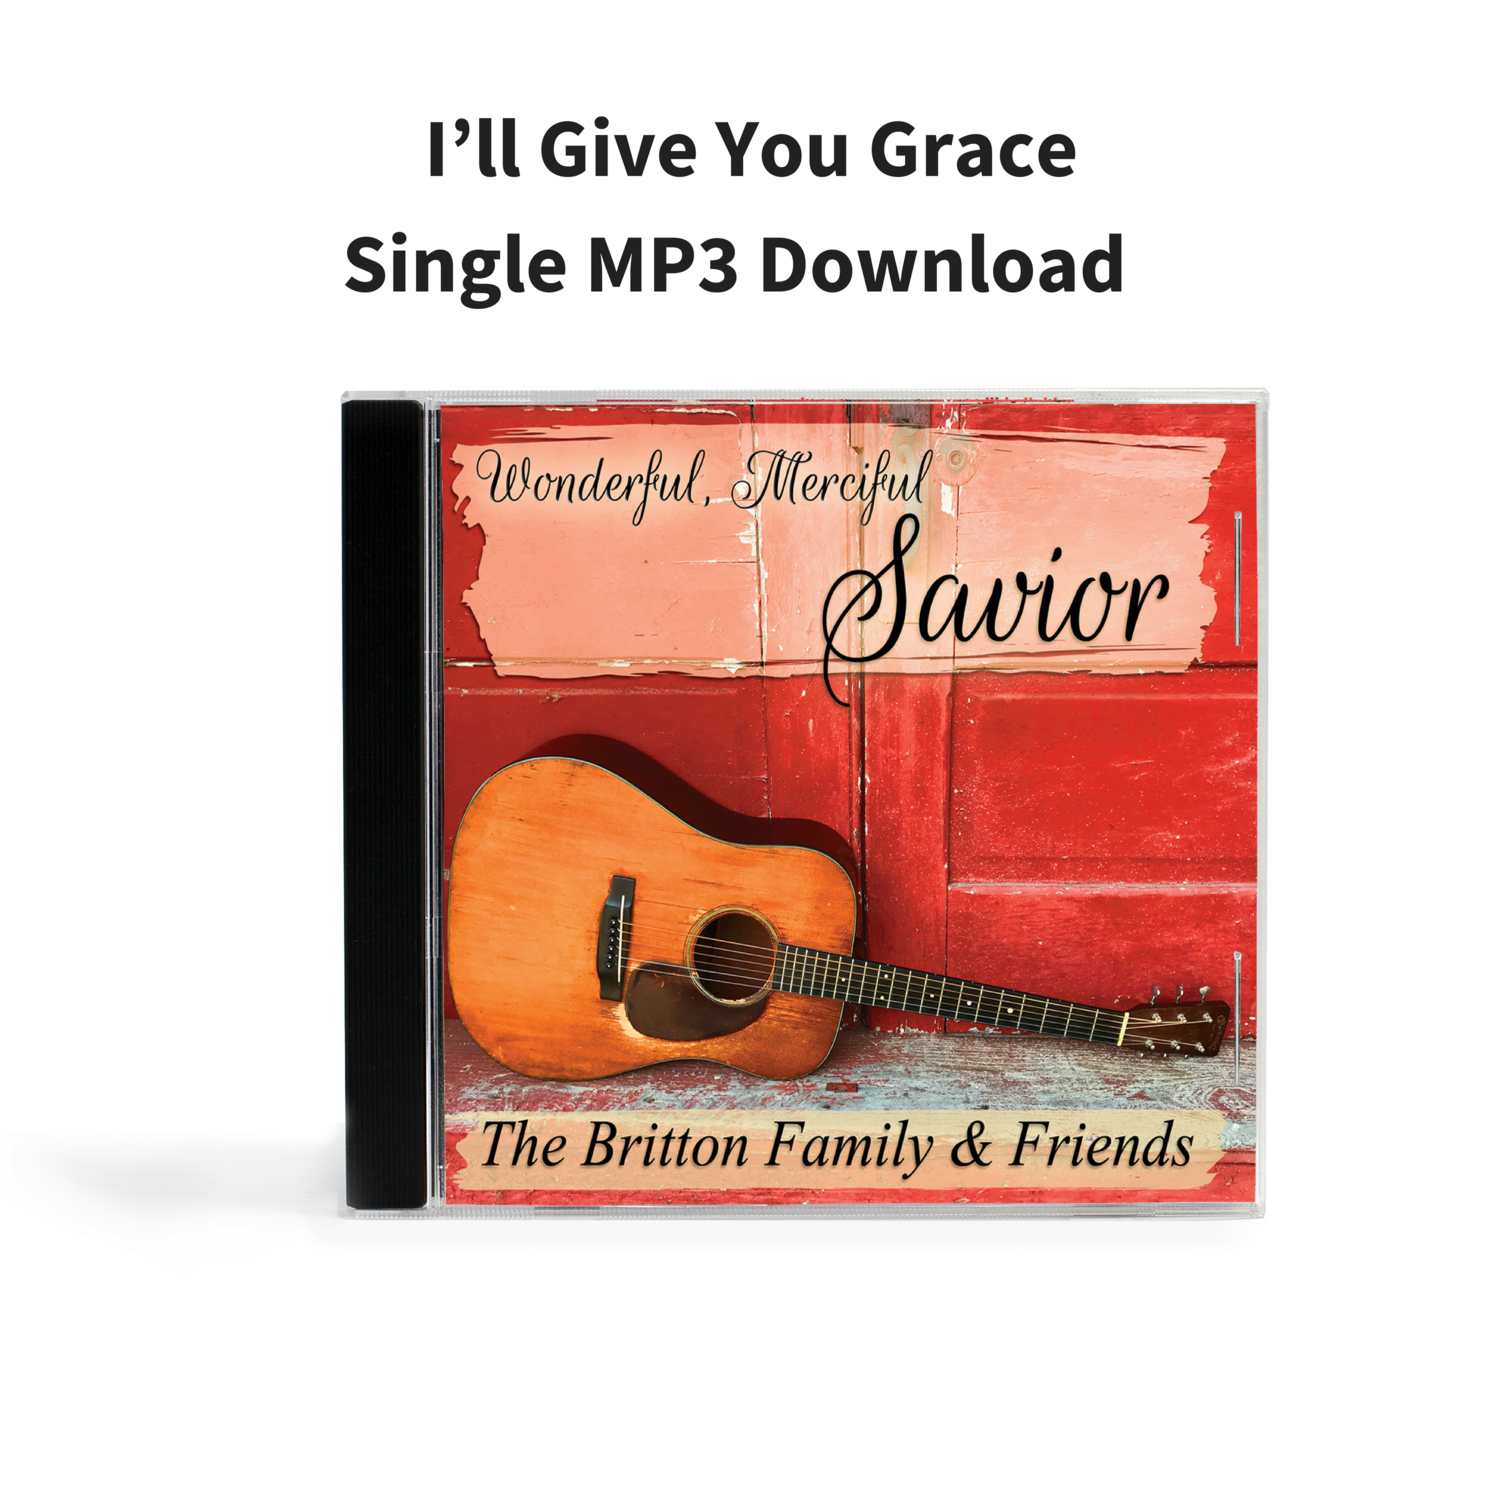 I'll Give You Grace - Single MP3 Download